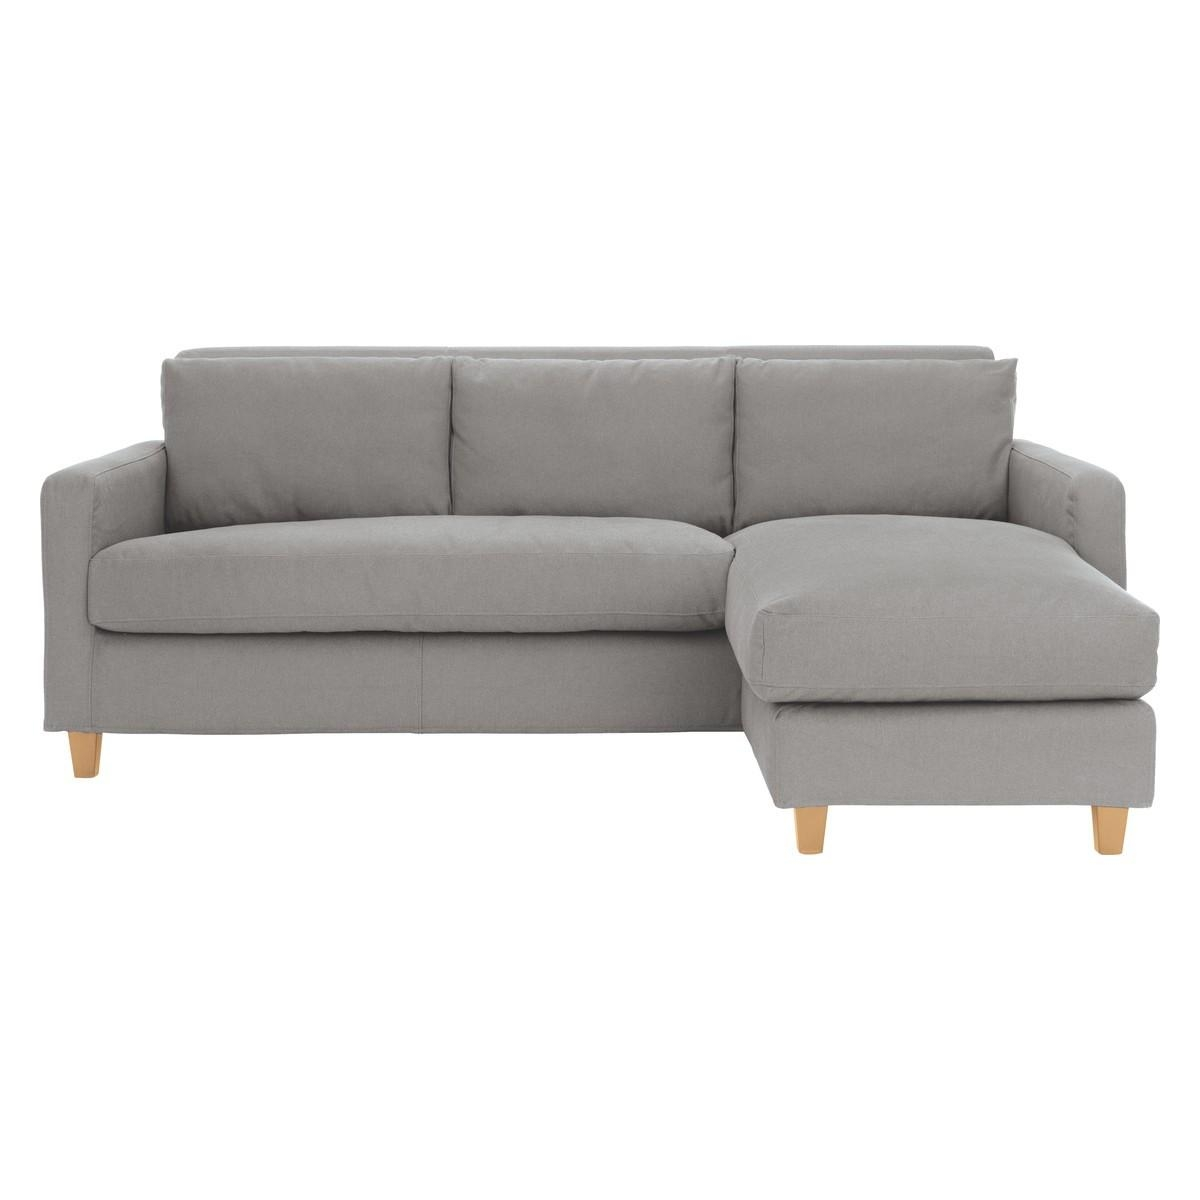 chaise sofas perth warehouse direct bayswater designs of wooden sofa sets india 20 best ideas